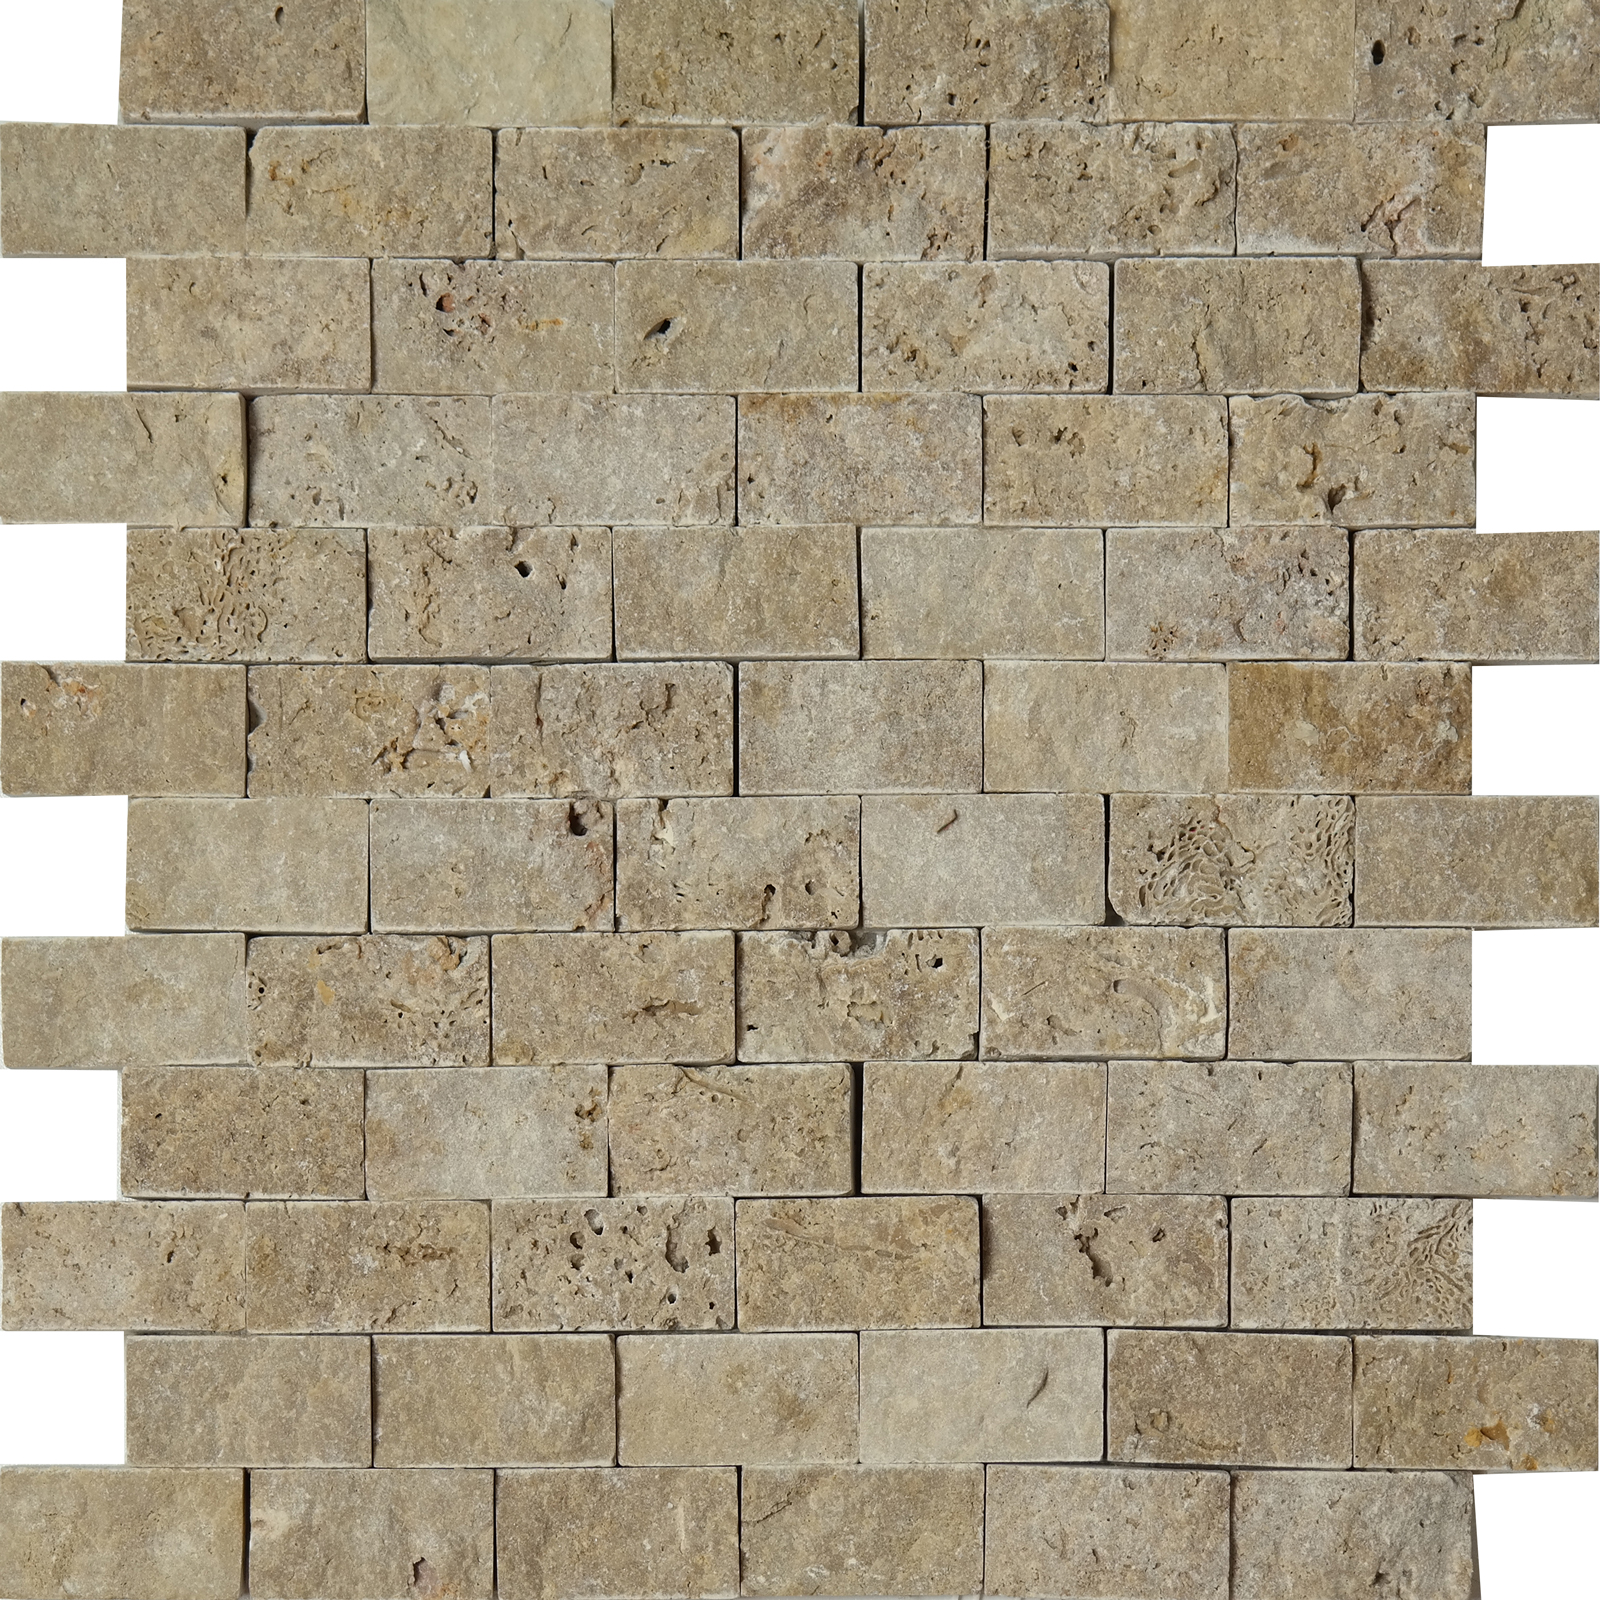 1x2 Split Face Mosaic Noche Travertine